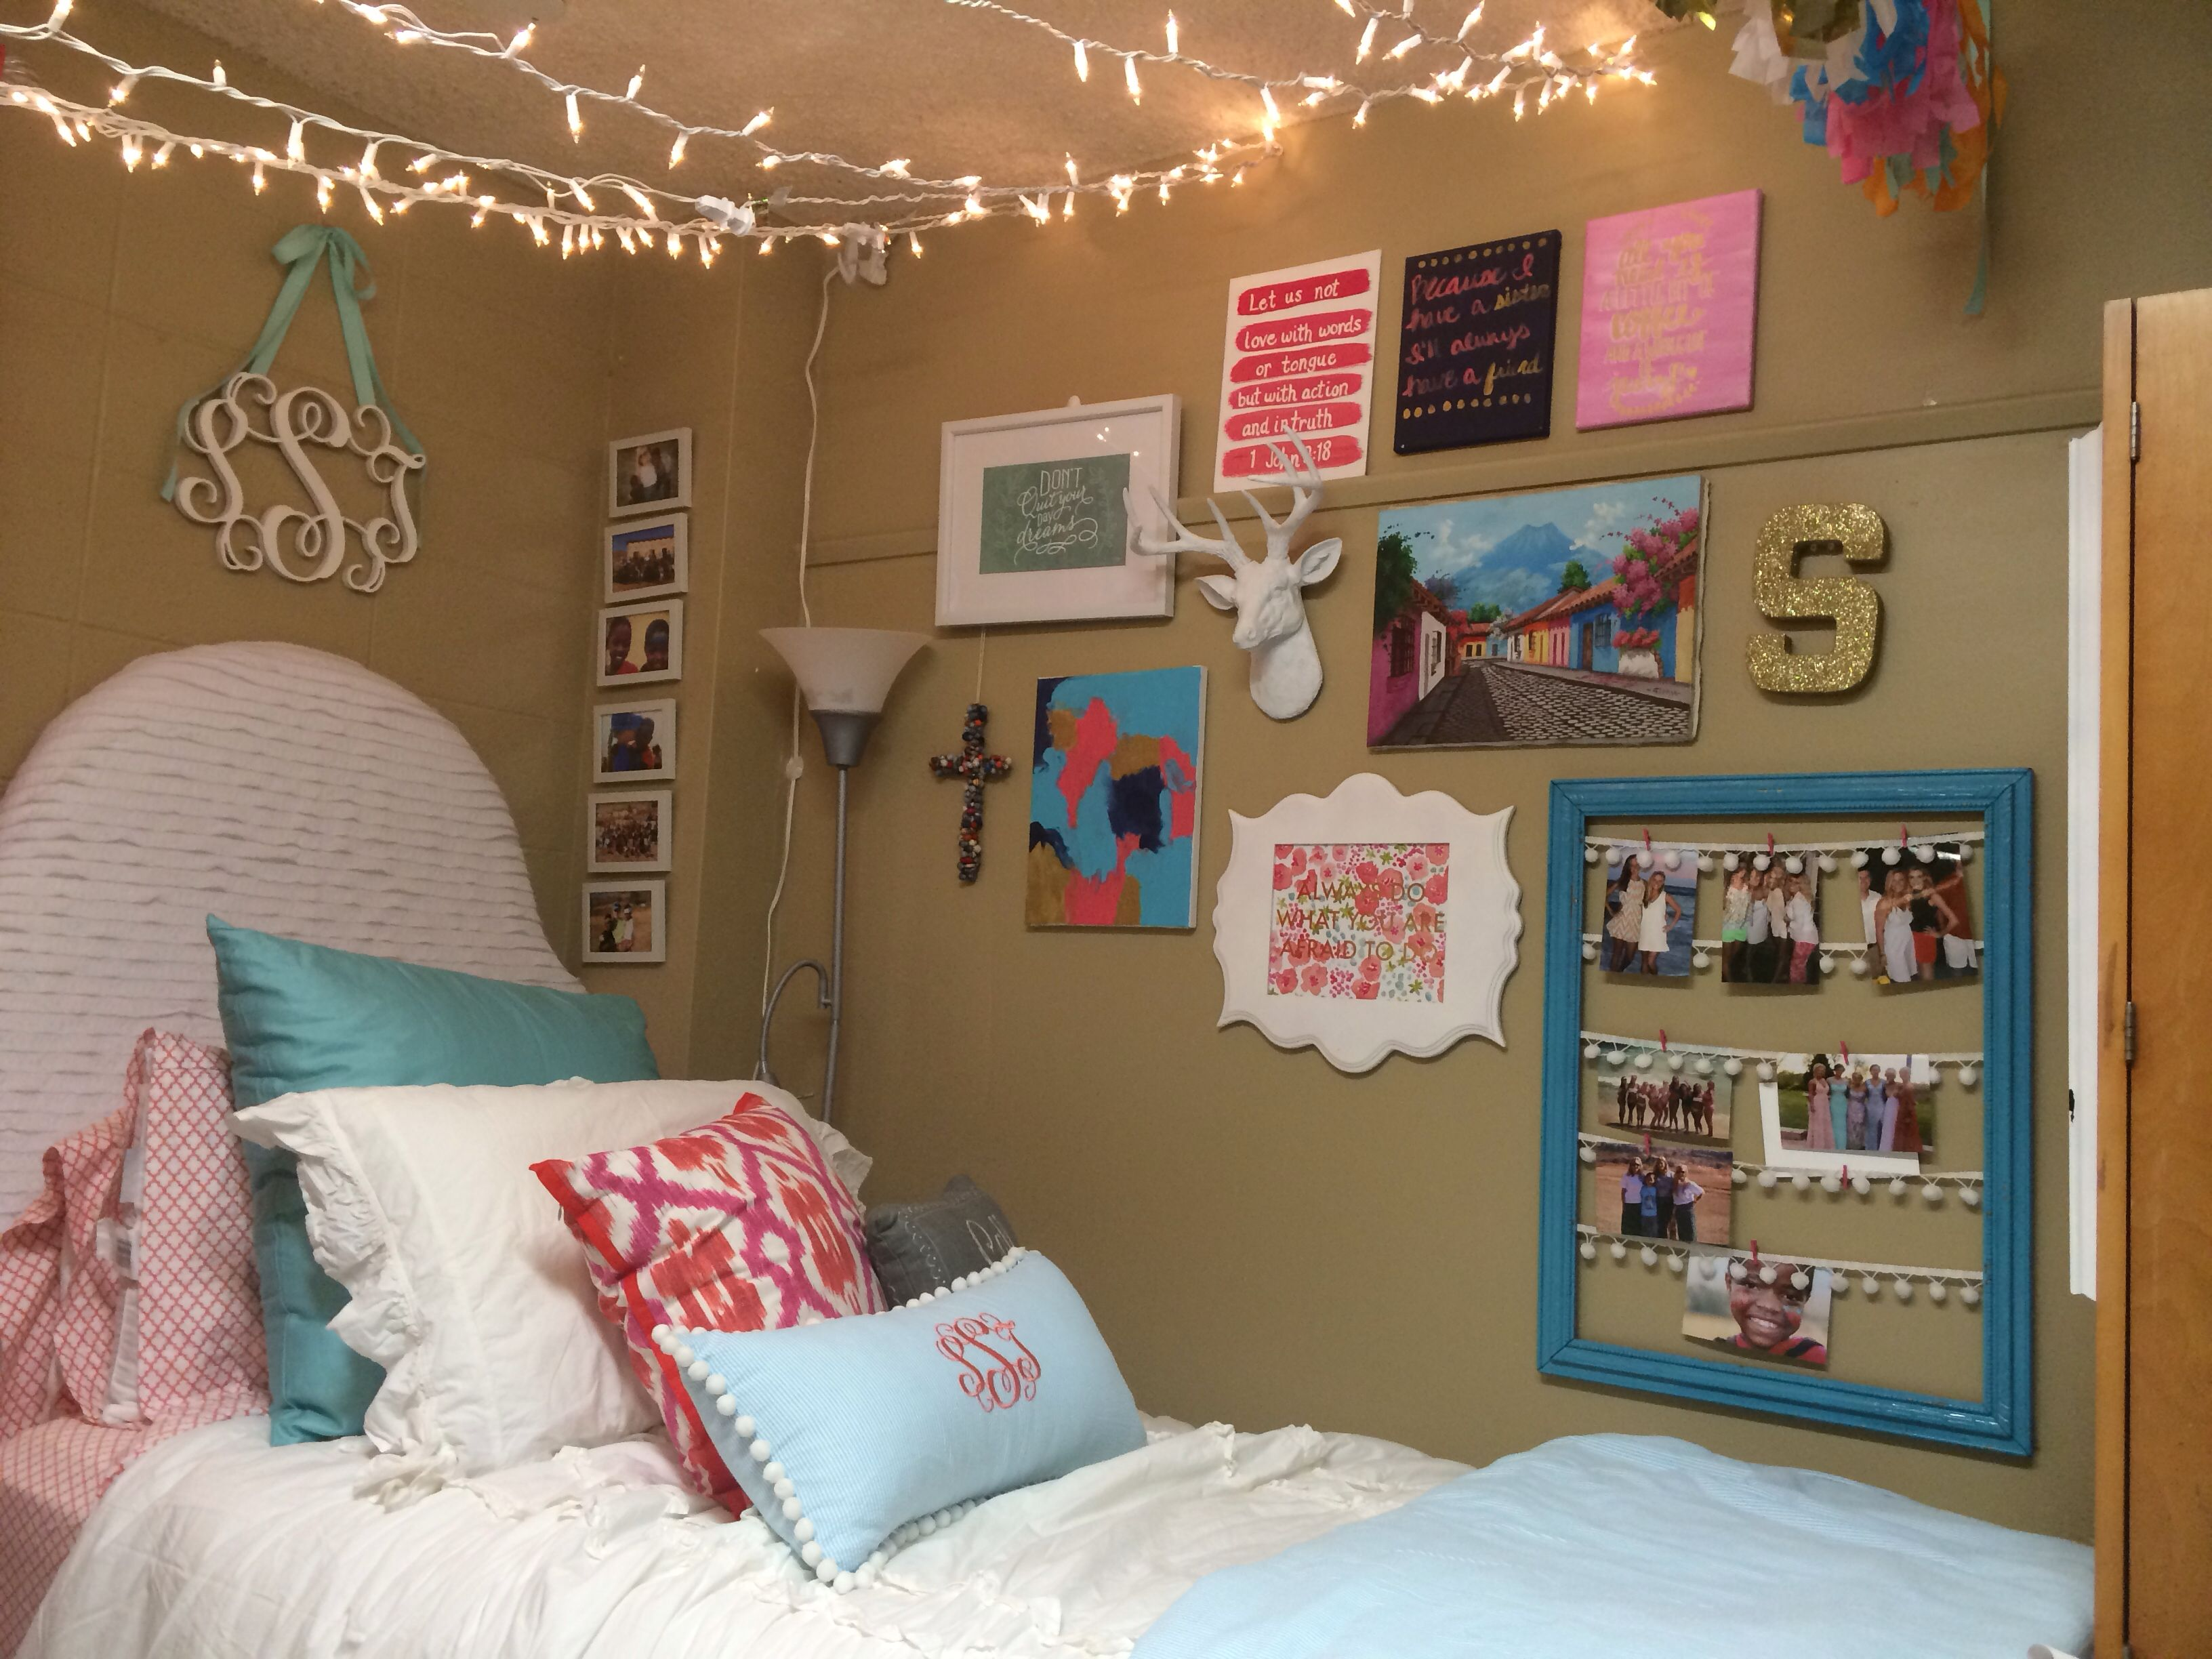 crosby dorm ole miss love the gallery wall and lights dorm ideas pinterest dorm gallery. Black Bedroom Furniture Sets. Home Design Ideas